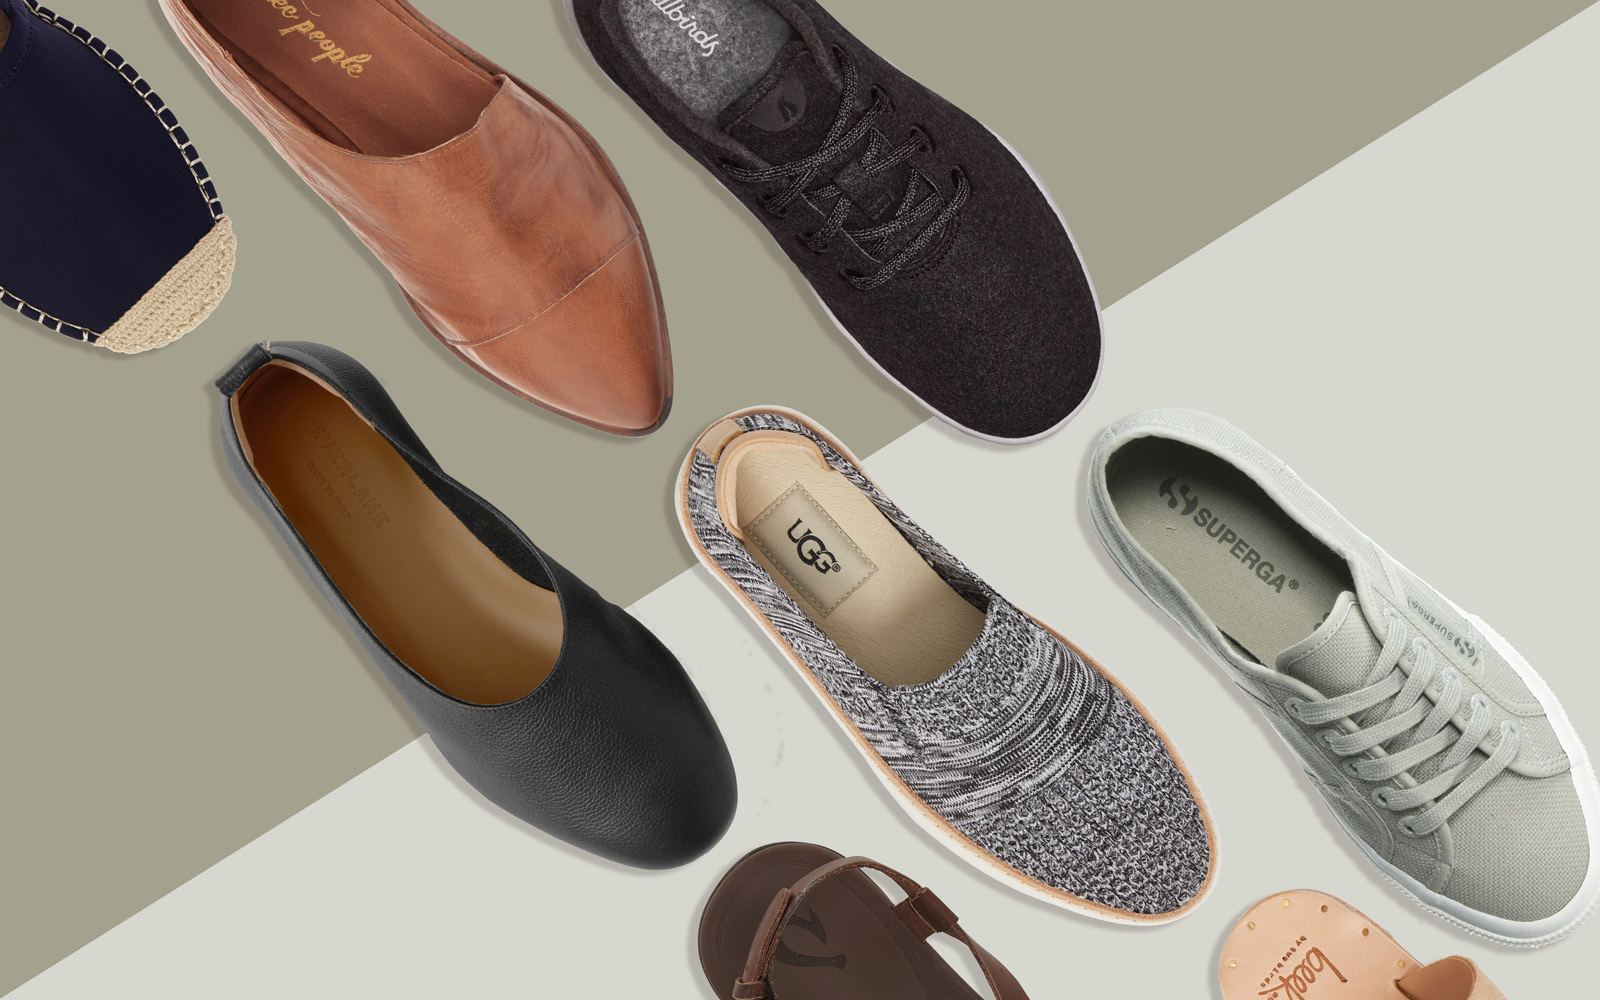 19 Comfy, Travel-friendly Shoes Made for Walking